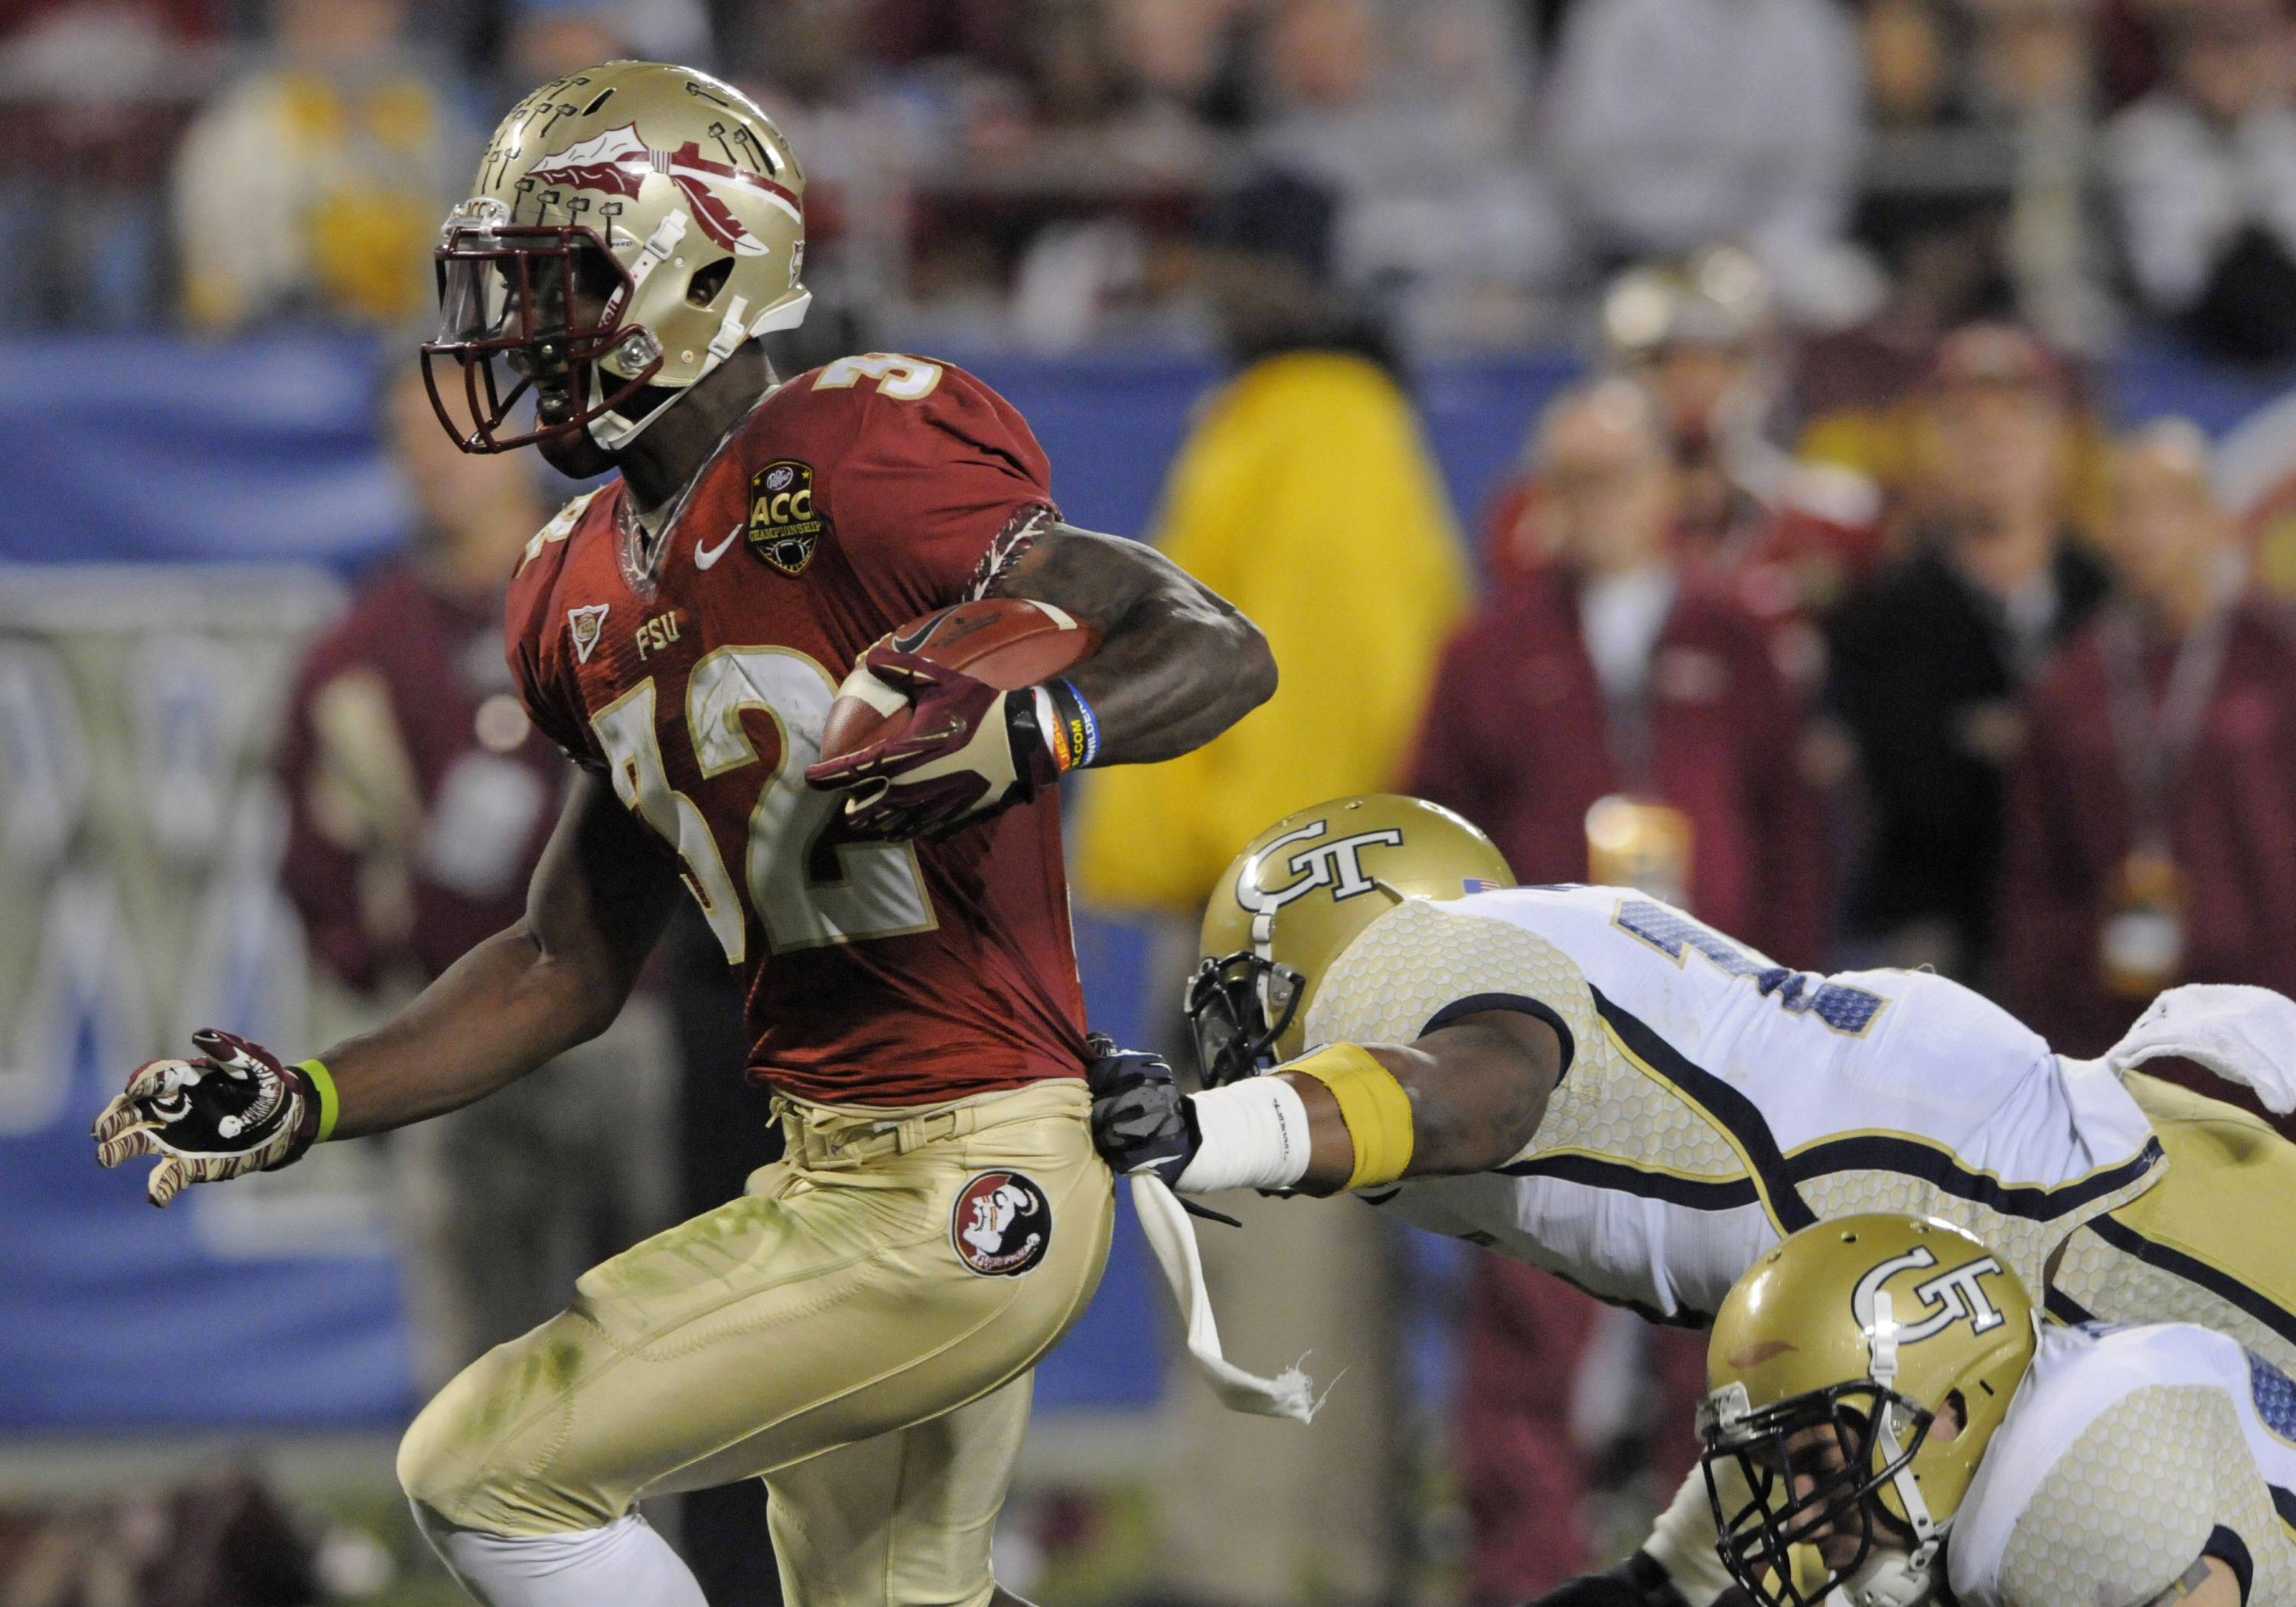 Florida State's James Wilder Jr. (32) runs into the end zone for  a touchdown past Georgia Tech's Brandon Watts (11) during the first half. (AP Photo/Mike McCarn)